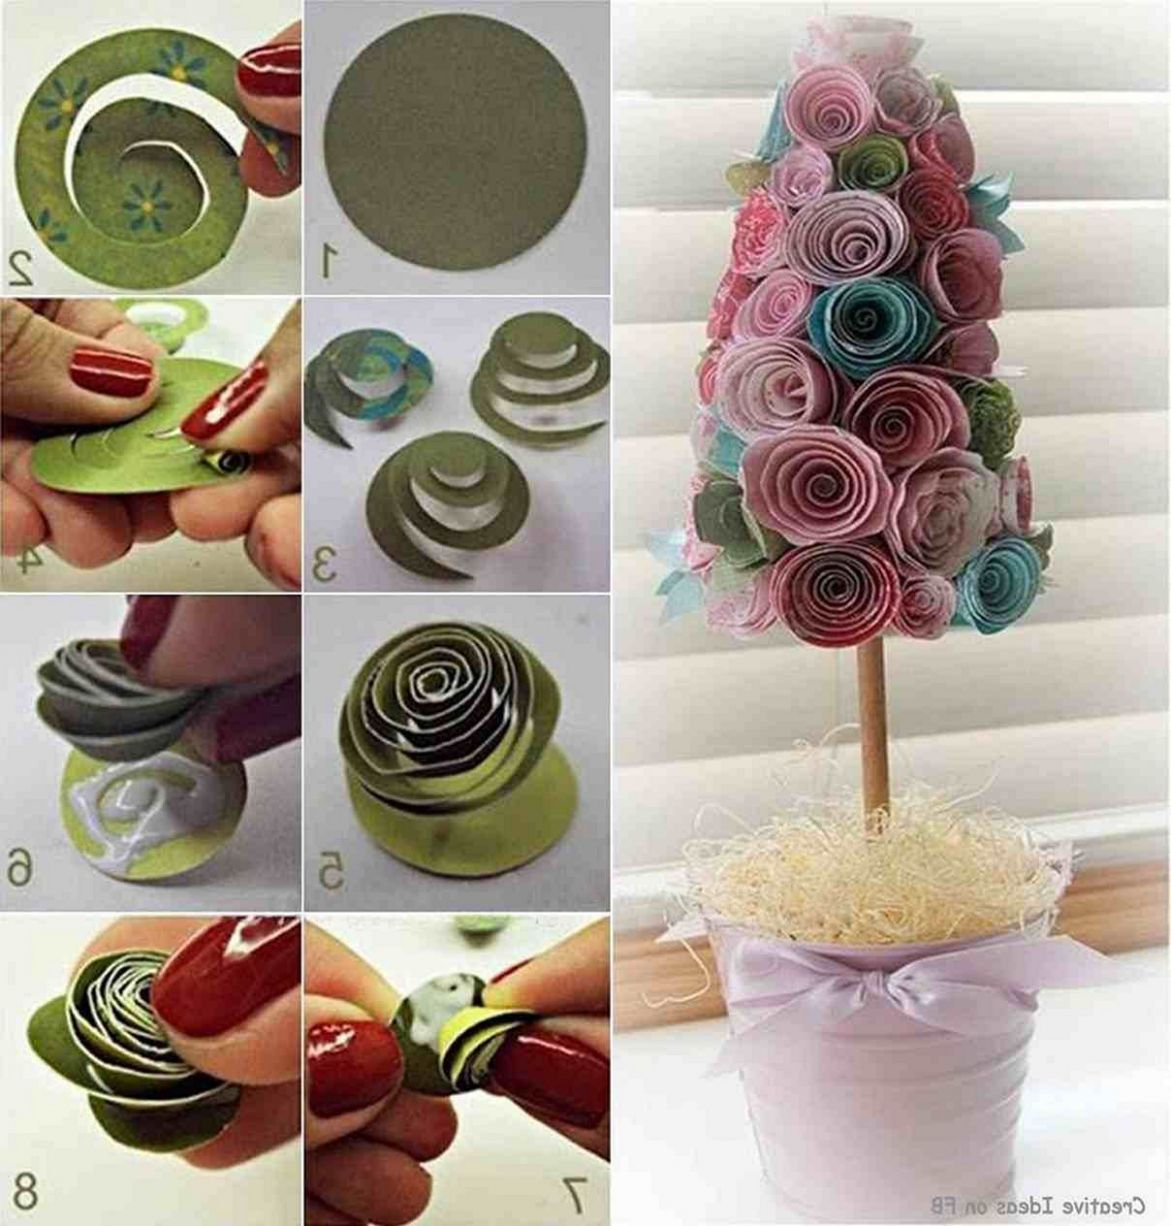 10 Easy DIY Home Decoration Ideas On a Budget (With images) | Diy ...